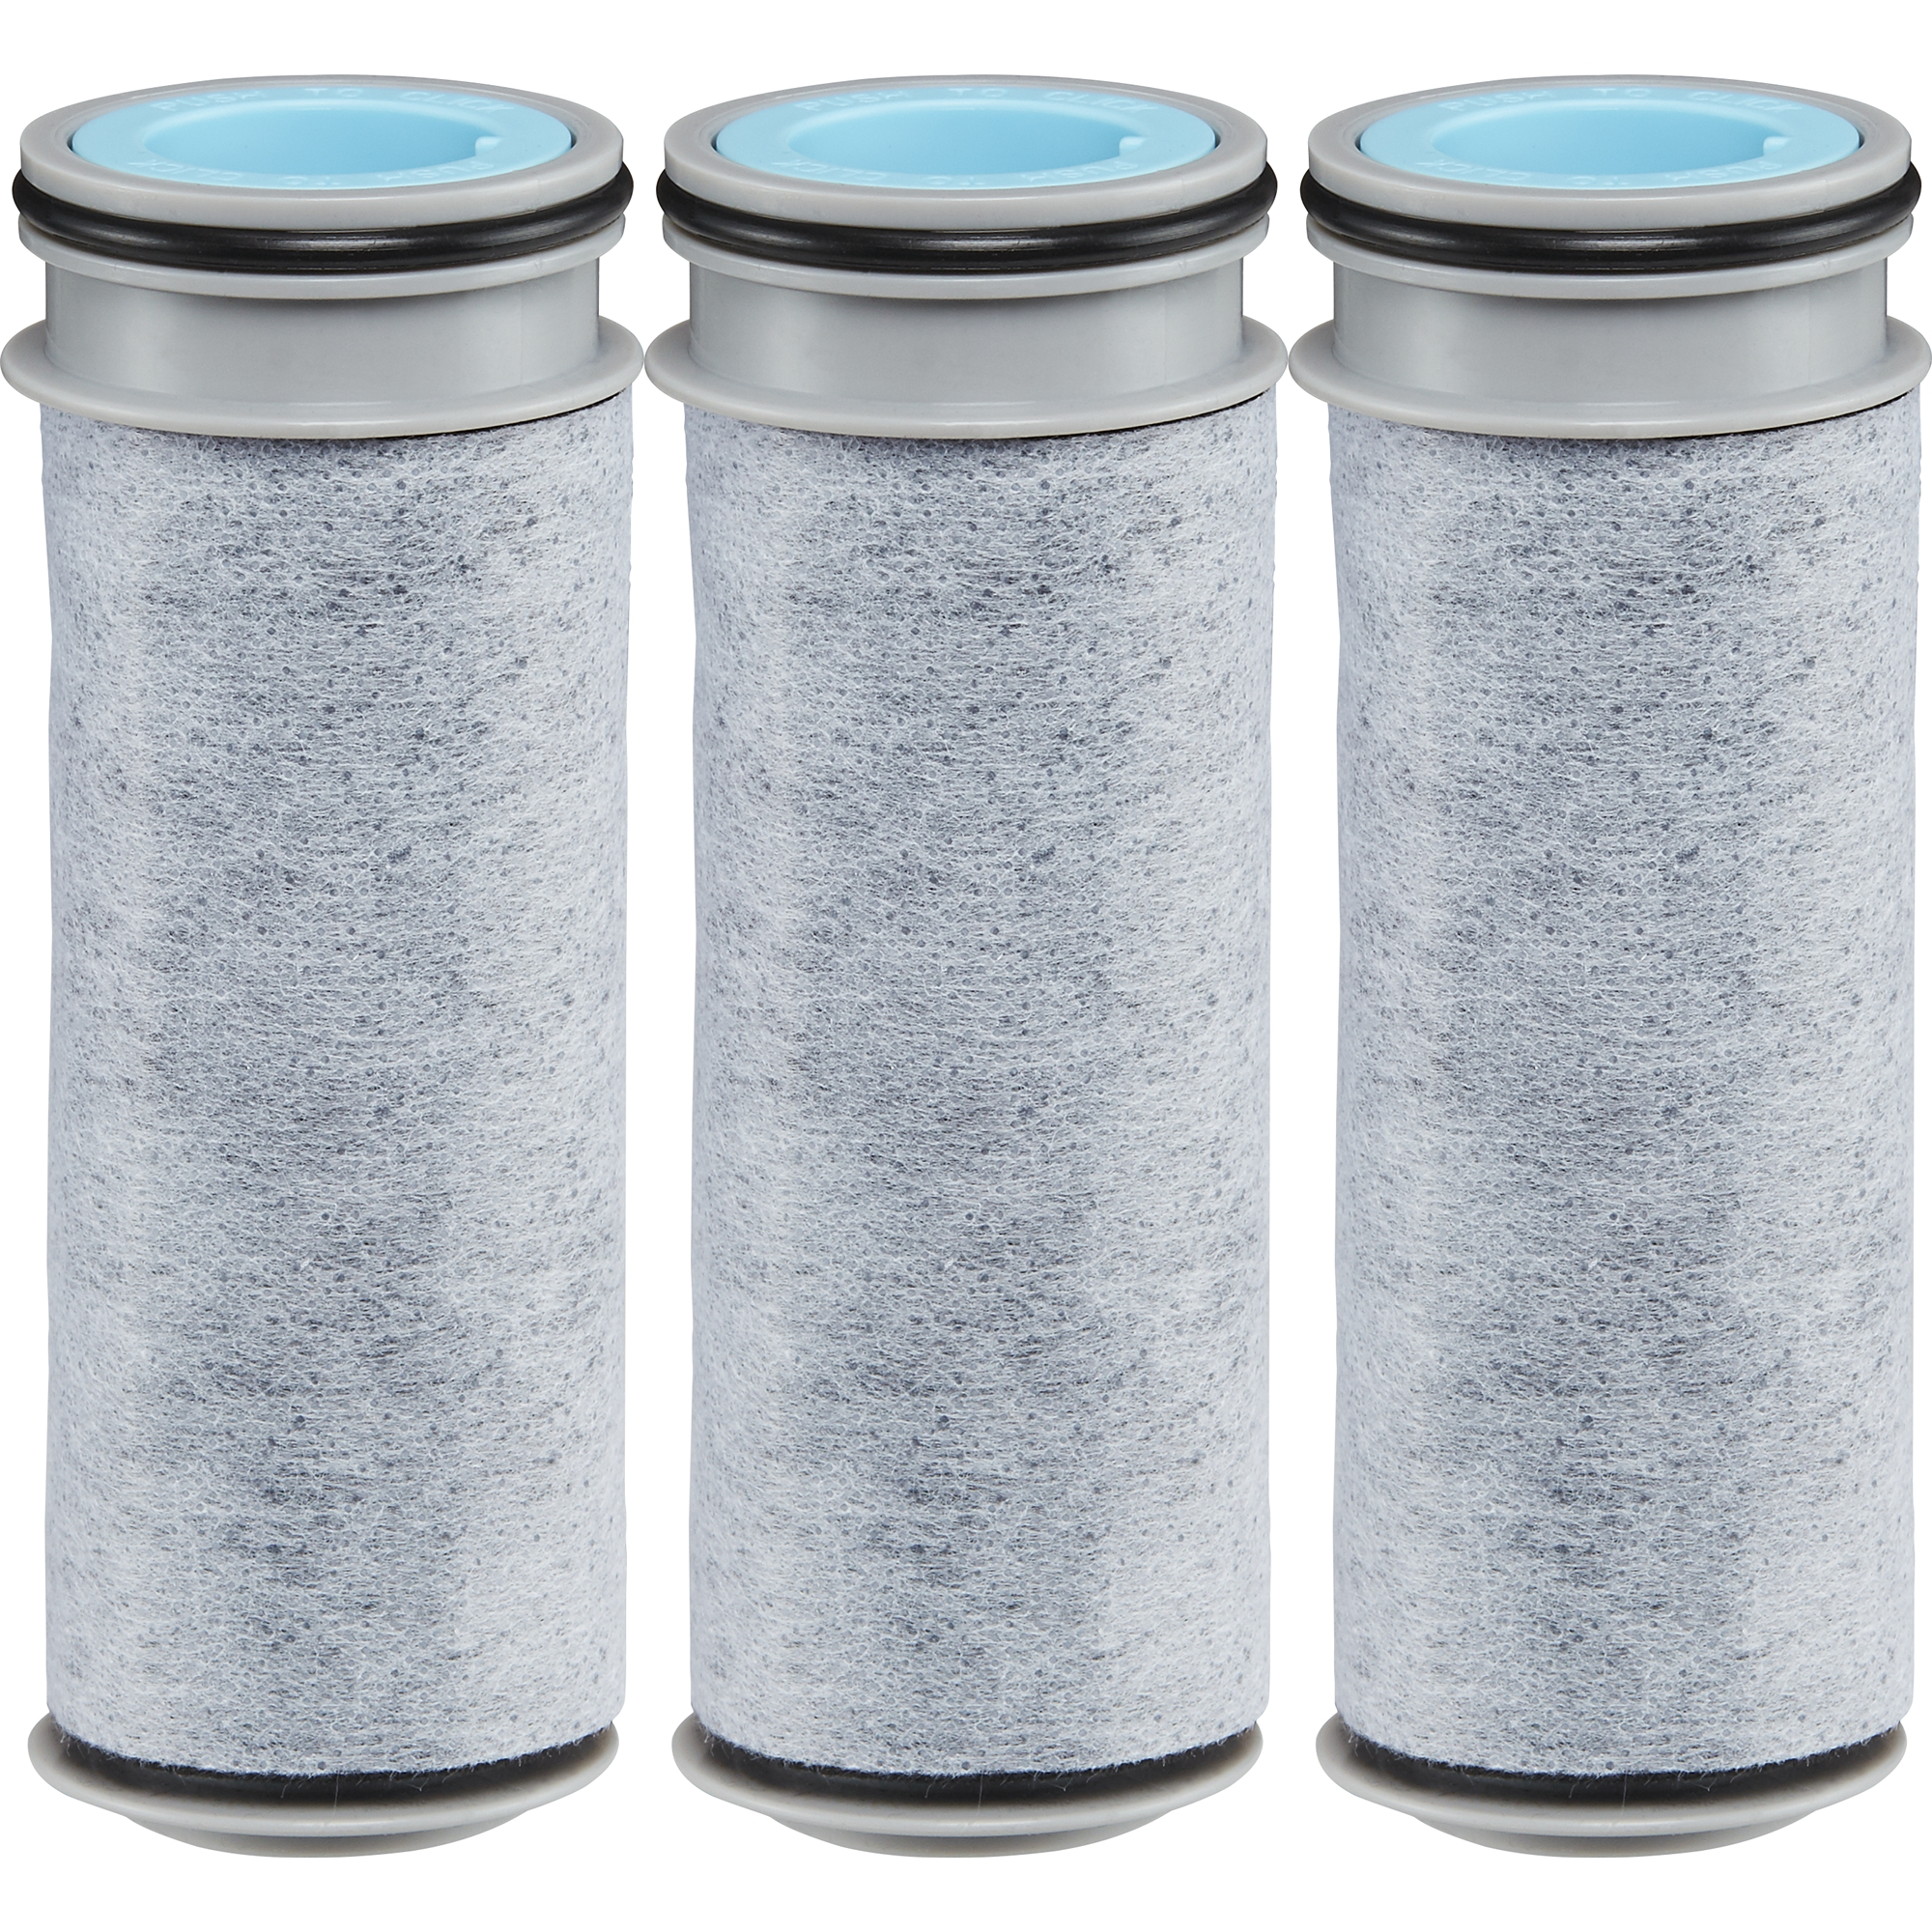 Brita Stream Pitcher Replacement Water Filter, BPA Free - 3 Count